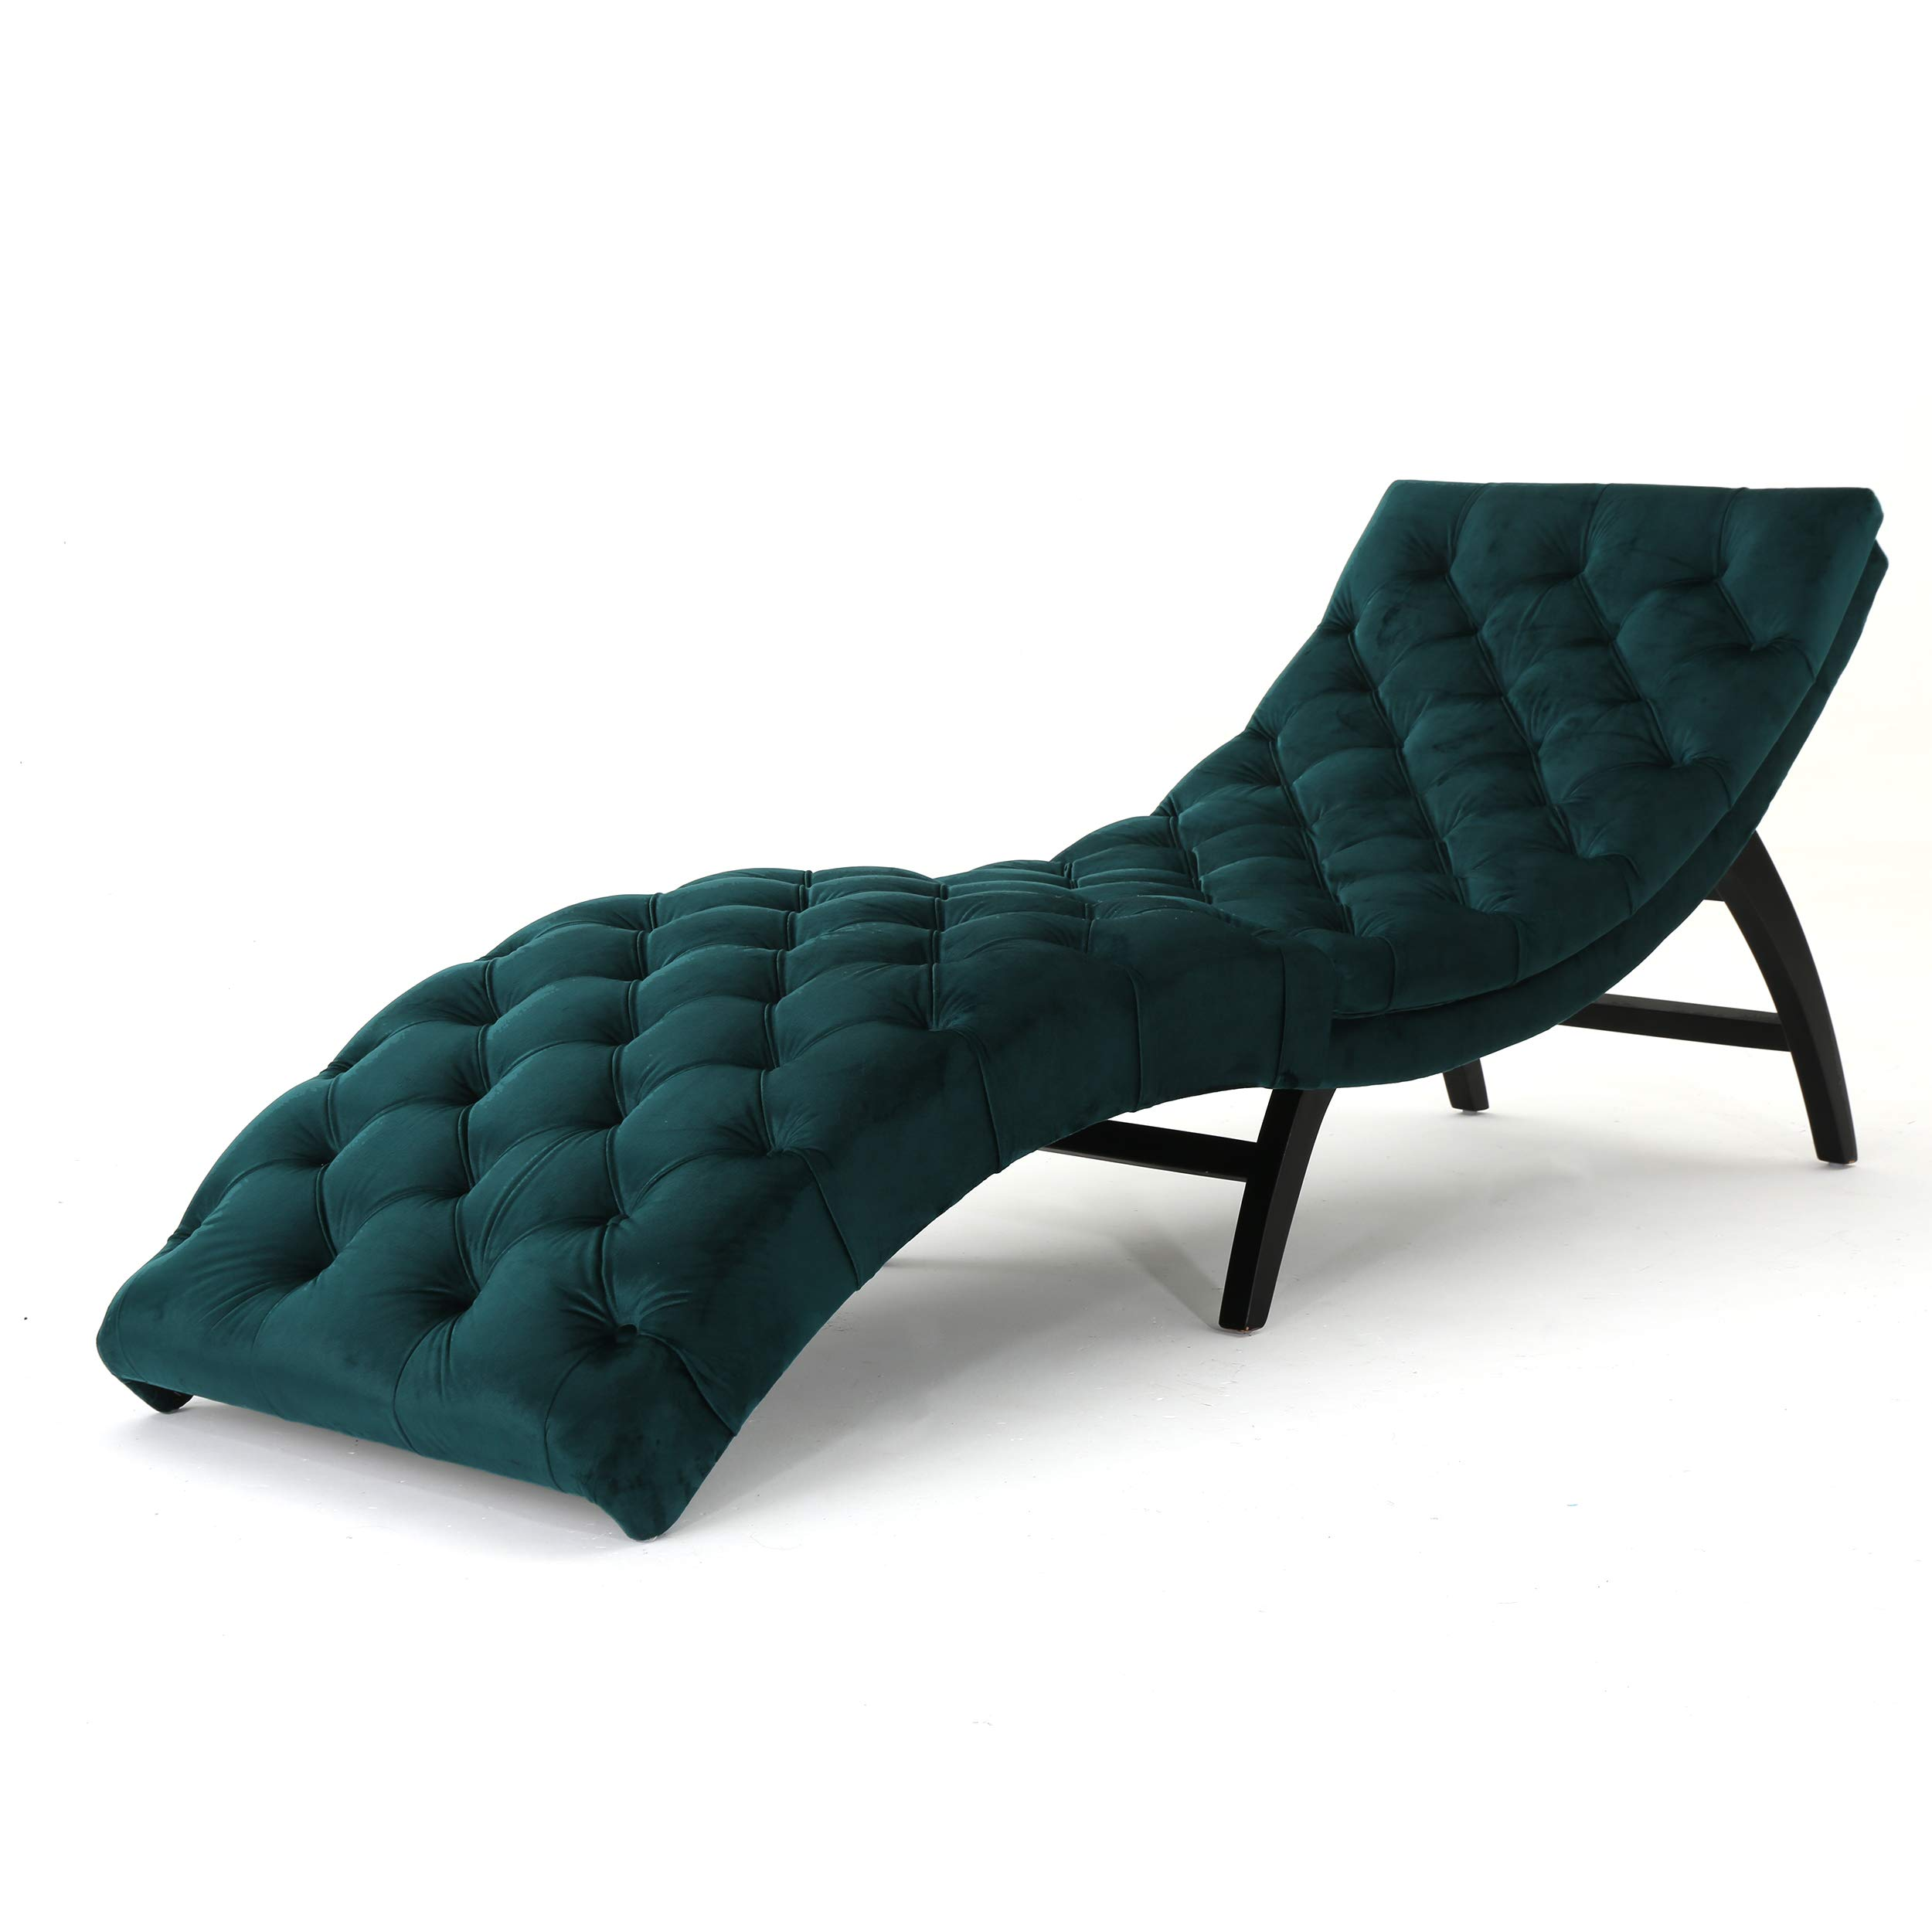 Christopher Knight Home Garret Tufted Velvet Chaise Lounge, Teal / Dark Brown